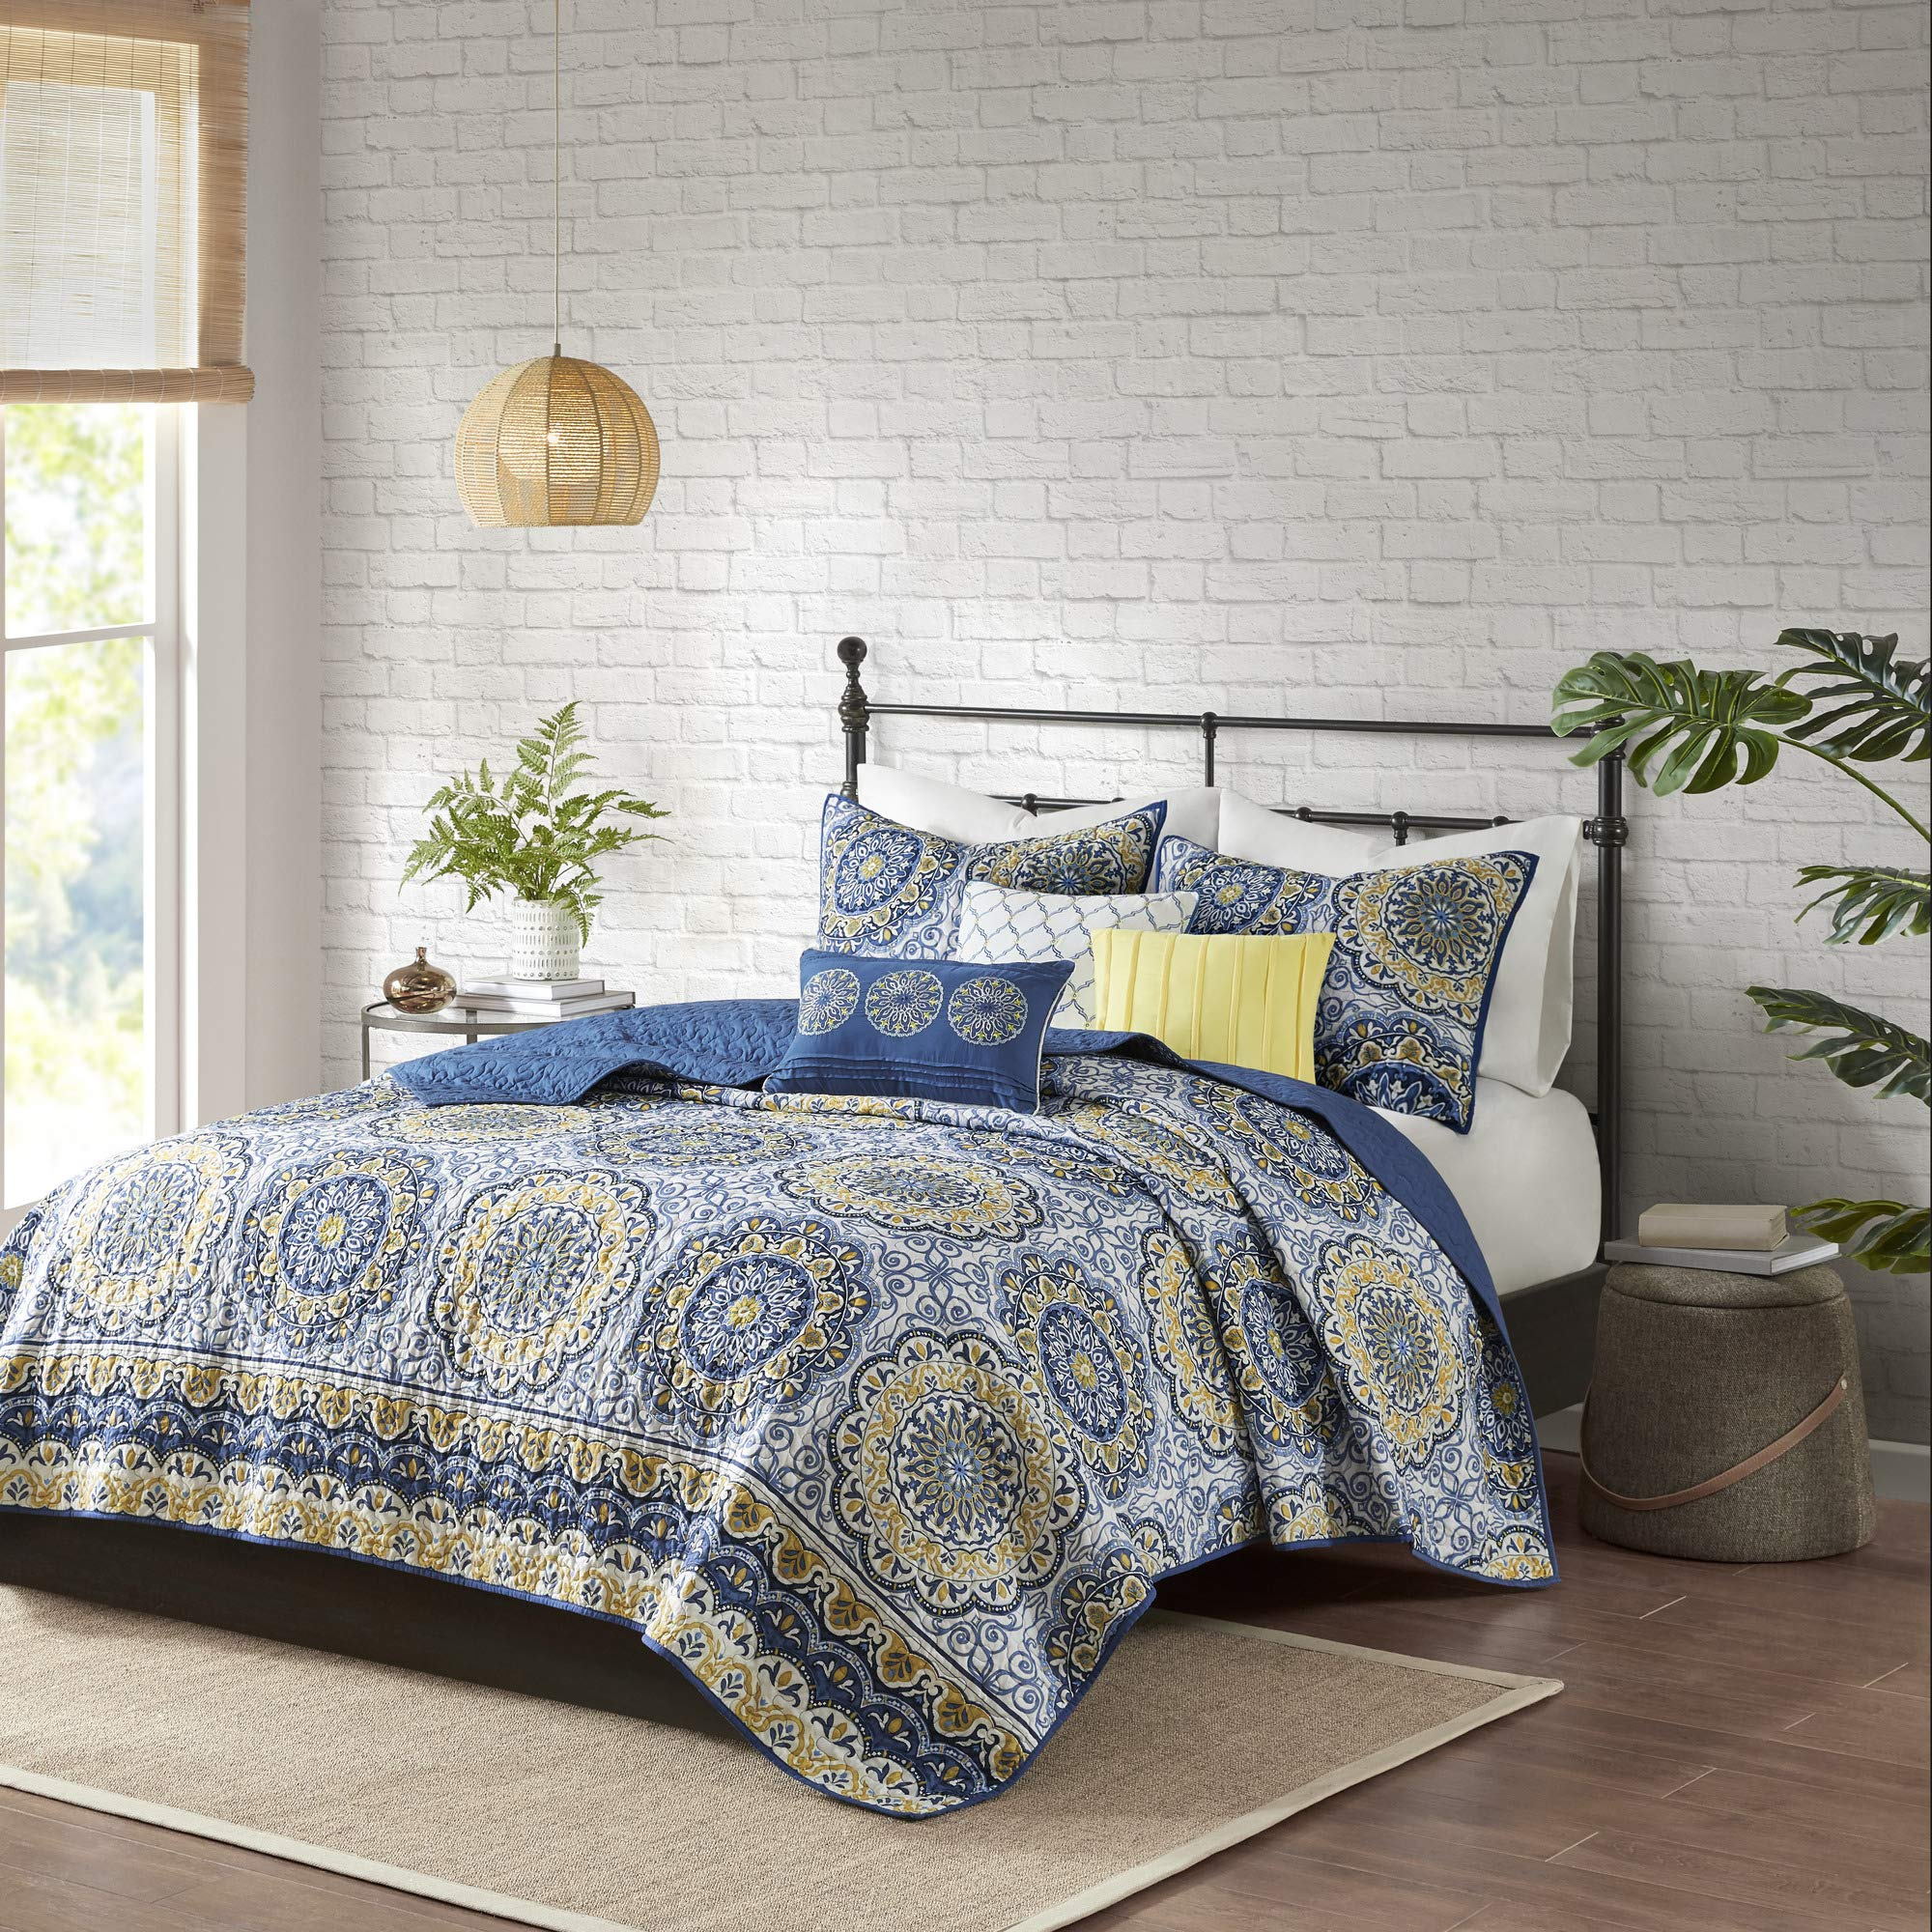 Madison Park Tangiers 6 Piece Reversible Coverlet Set, King/Cal King, Blue by Madison Park